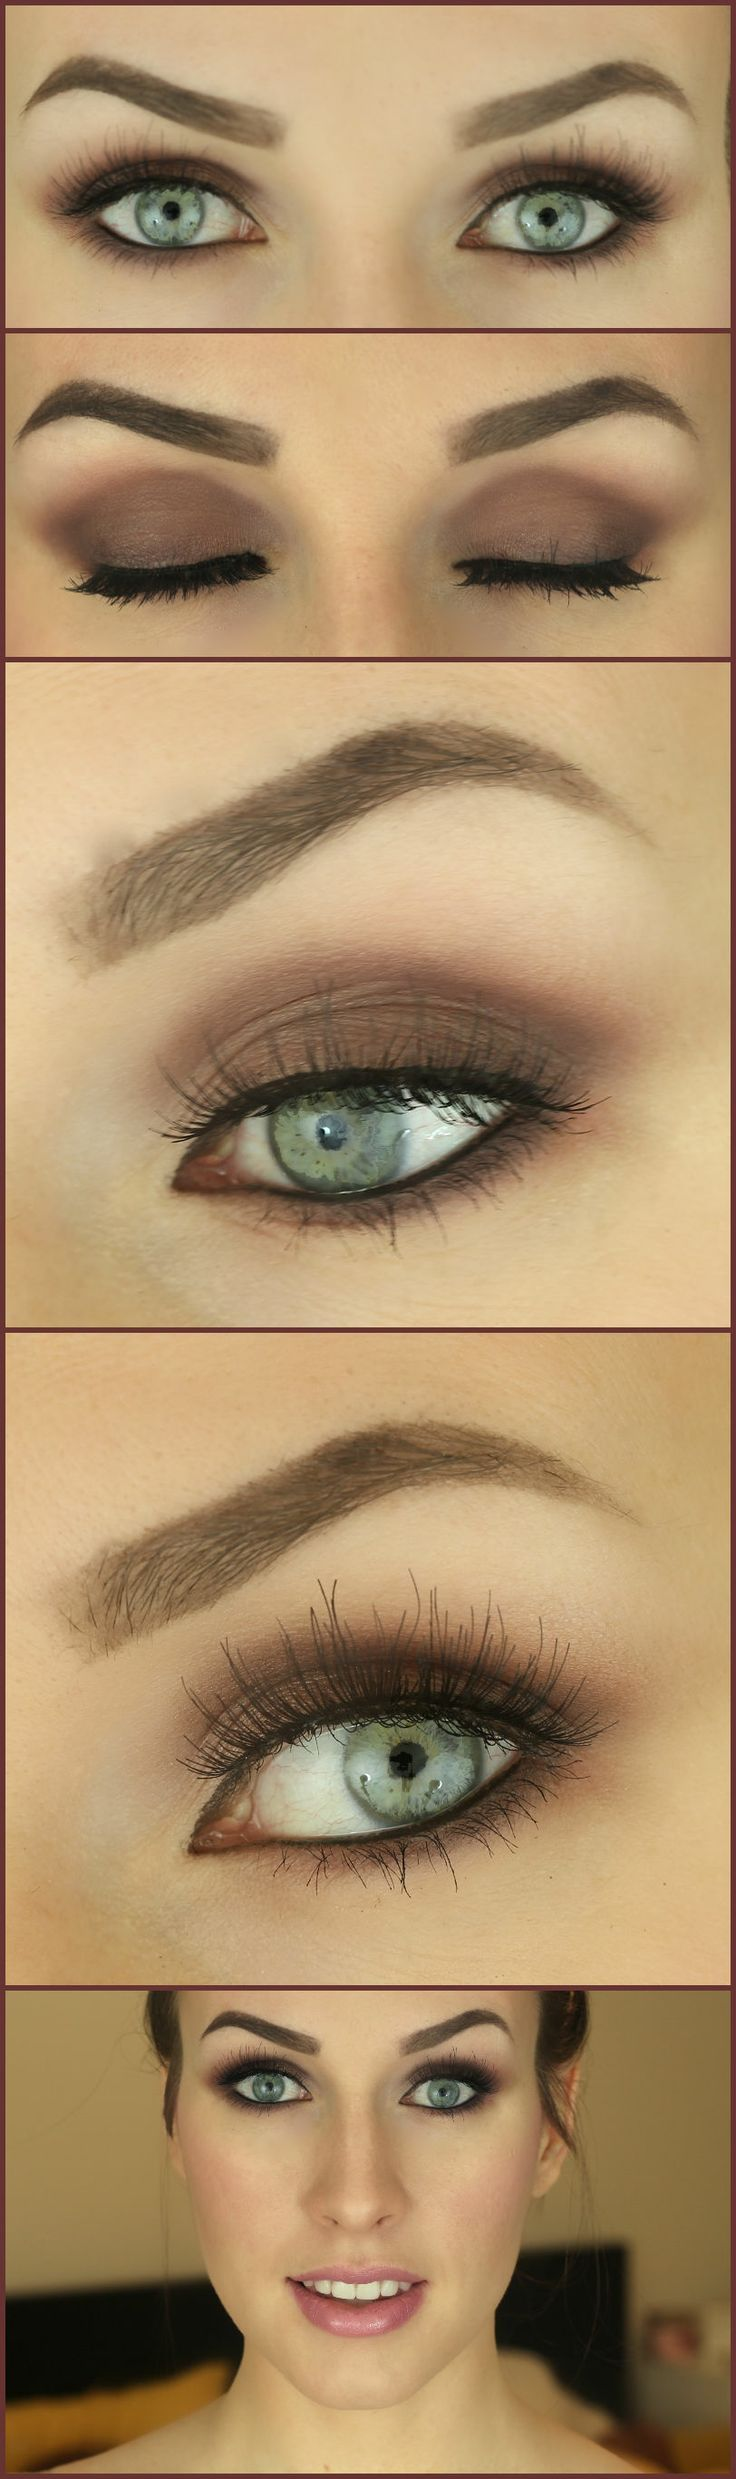 5 Tips for the most natural bridal makeup Plum smokey